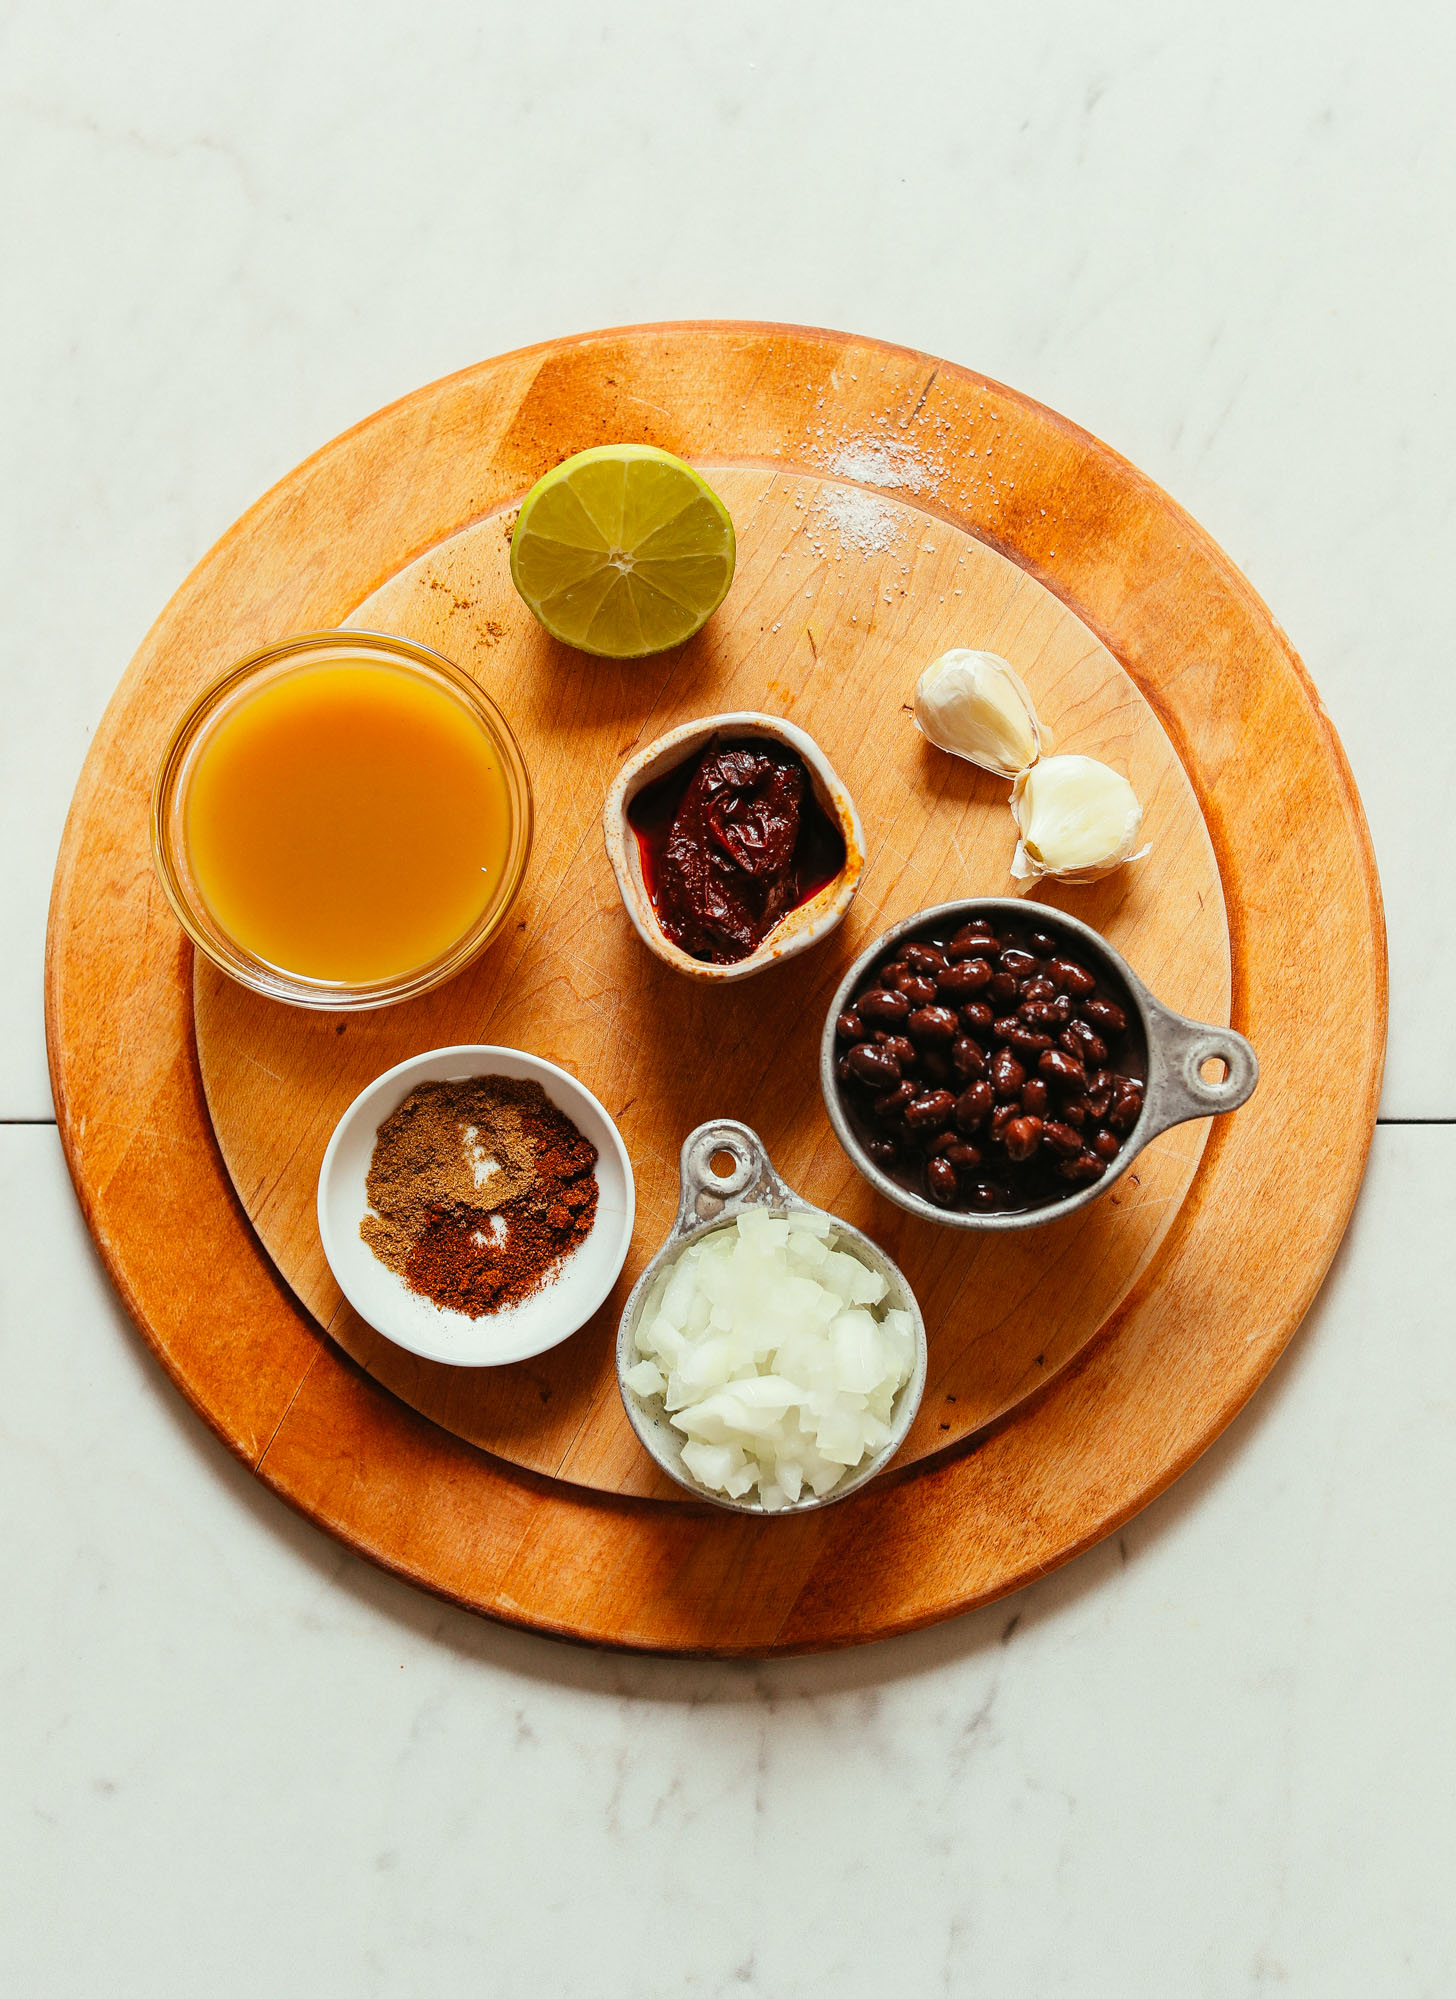 Overhead image of cutting board holding ingredients for black bean soup, including black beans, onion, lime, and vegetable broth